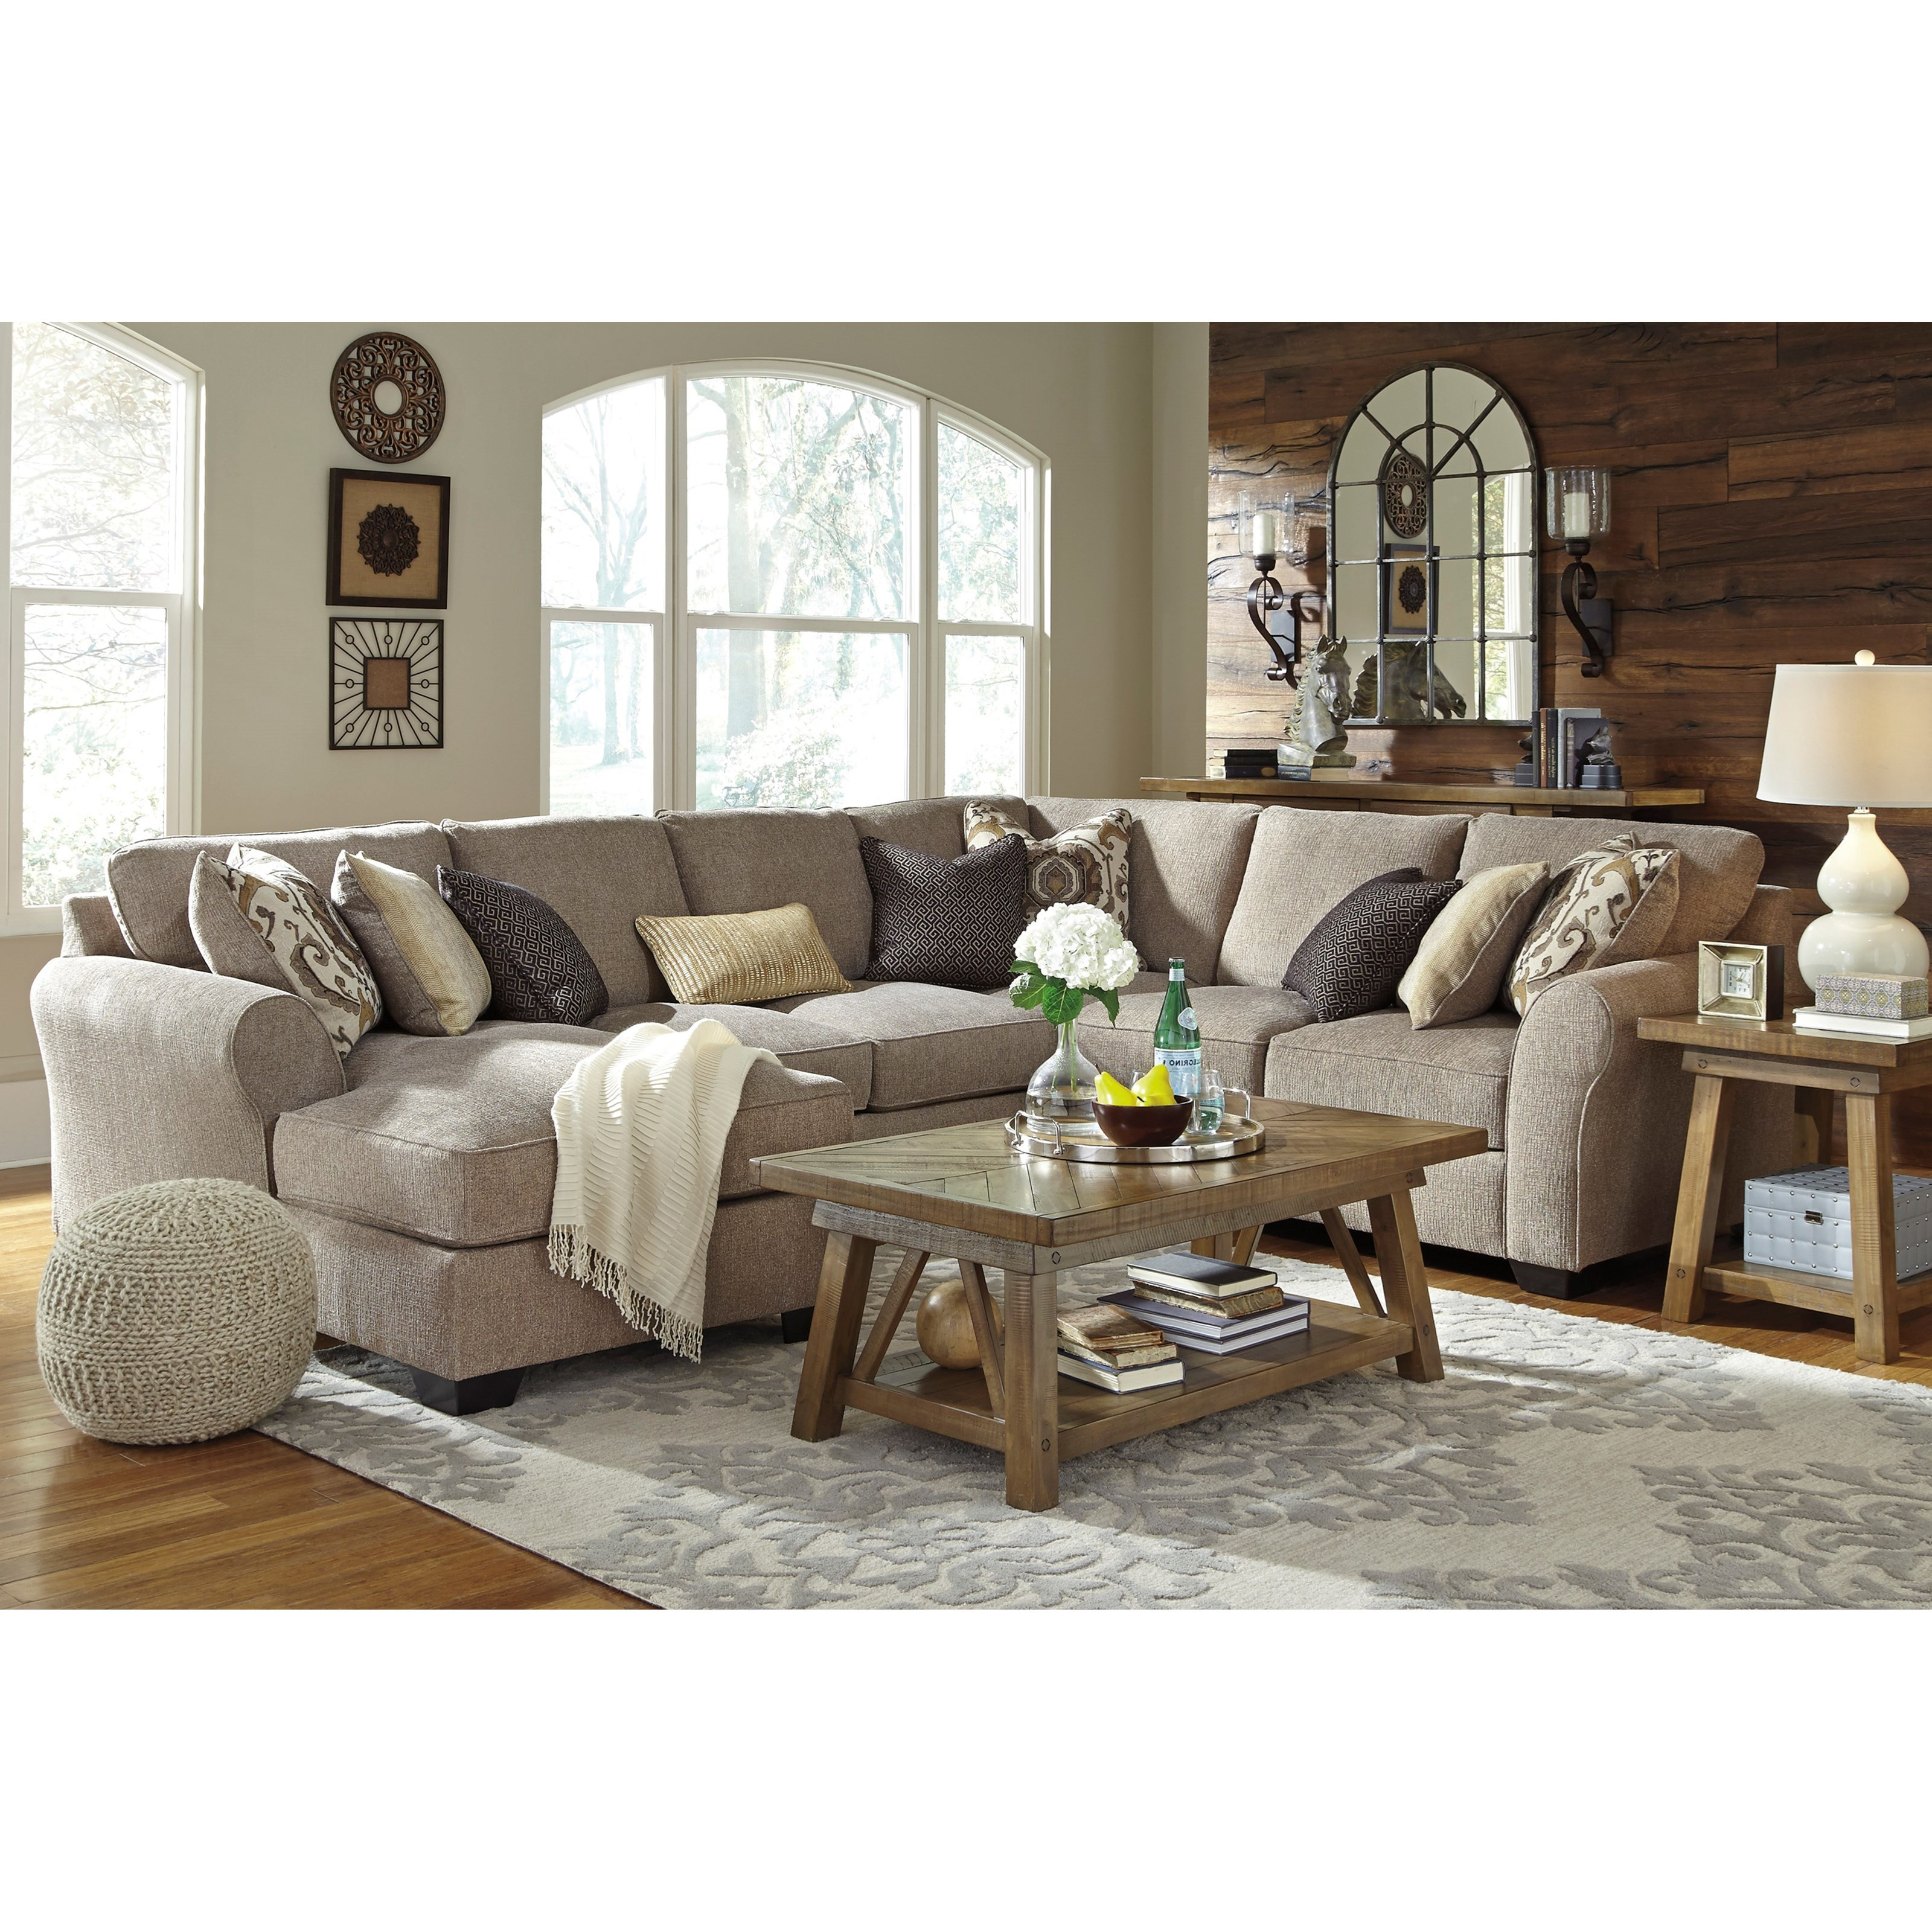 Benchcraft pantomine 4 piece sectional with left chaise for 4 piece sectional with chaise